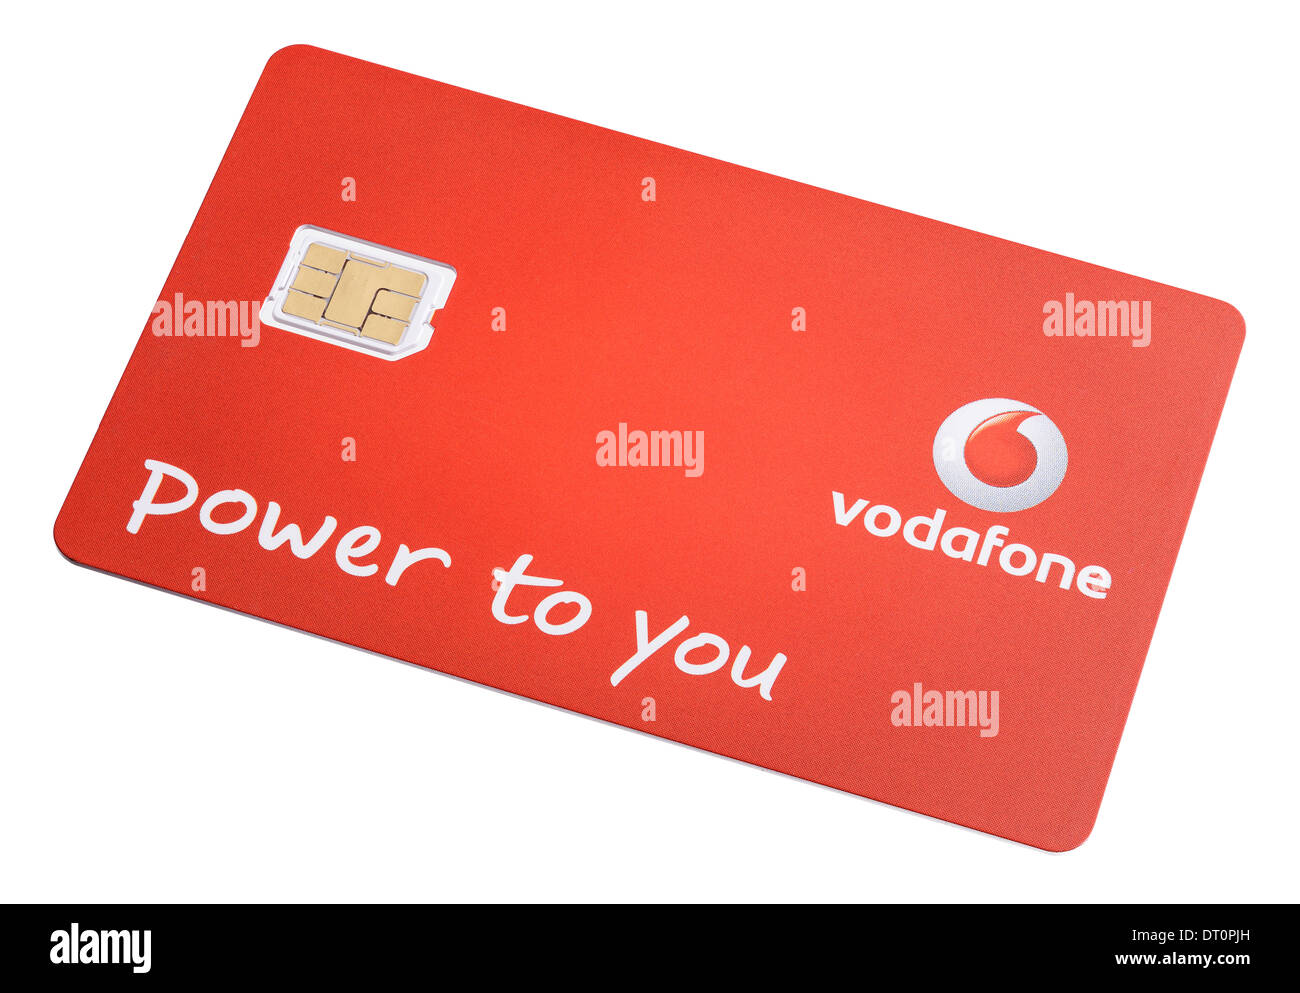 Vodafone nano sim card for a mobile phone - Stock Image